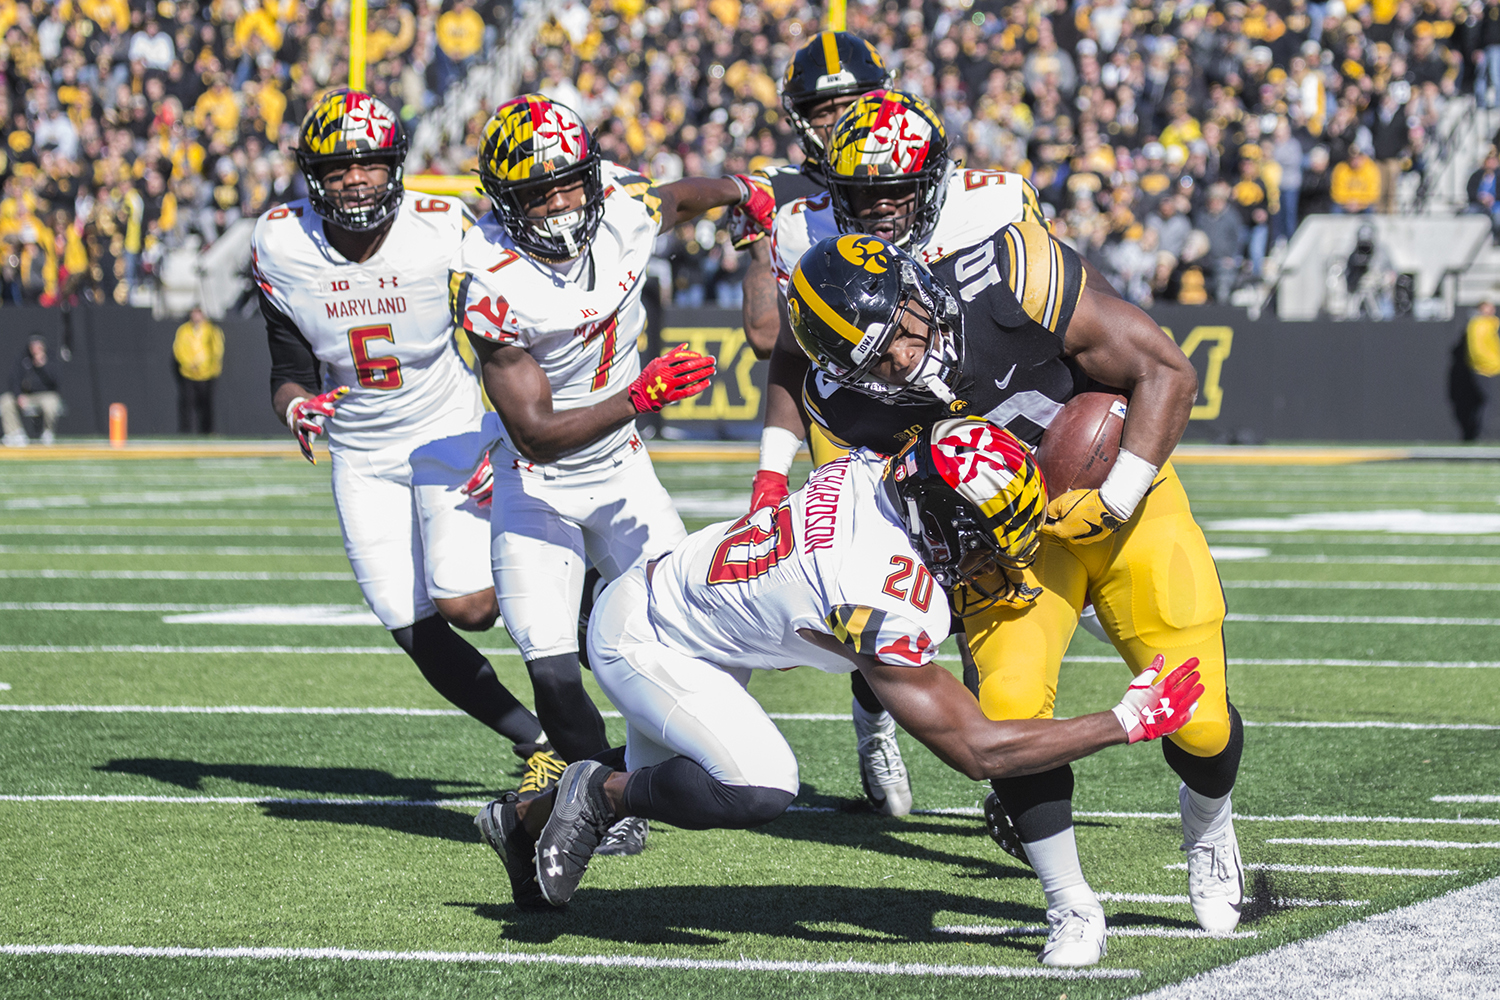 Iowa running back Mekhi Sargent gets tackled on the sideline during a football game between Iowa and Maryland in Kinnick Stadium on Saturday, Oct. 20, 2018. The Hawkeyes defeated the Terrapins, 23-0.